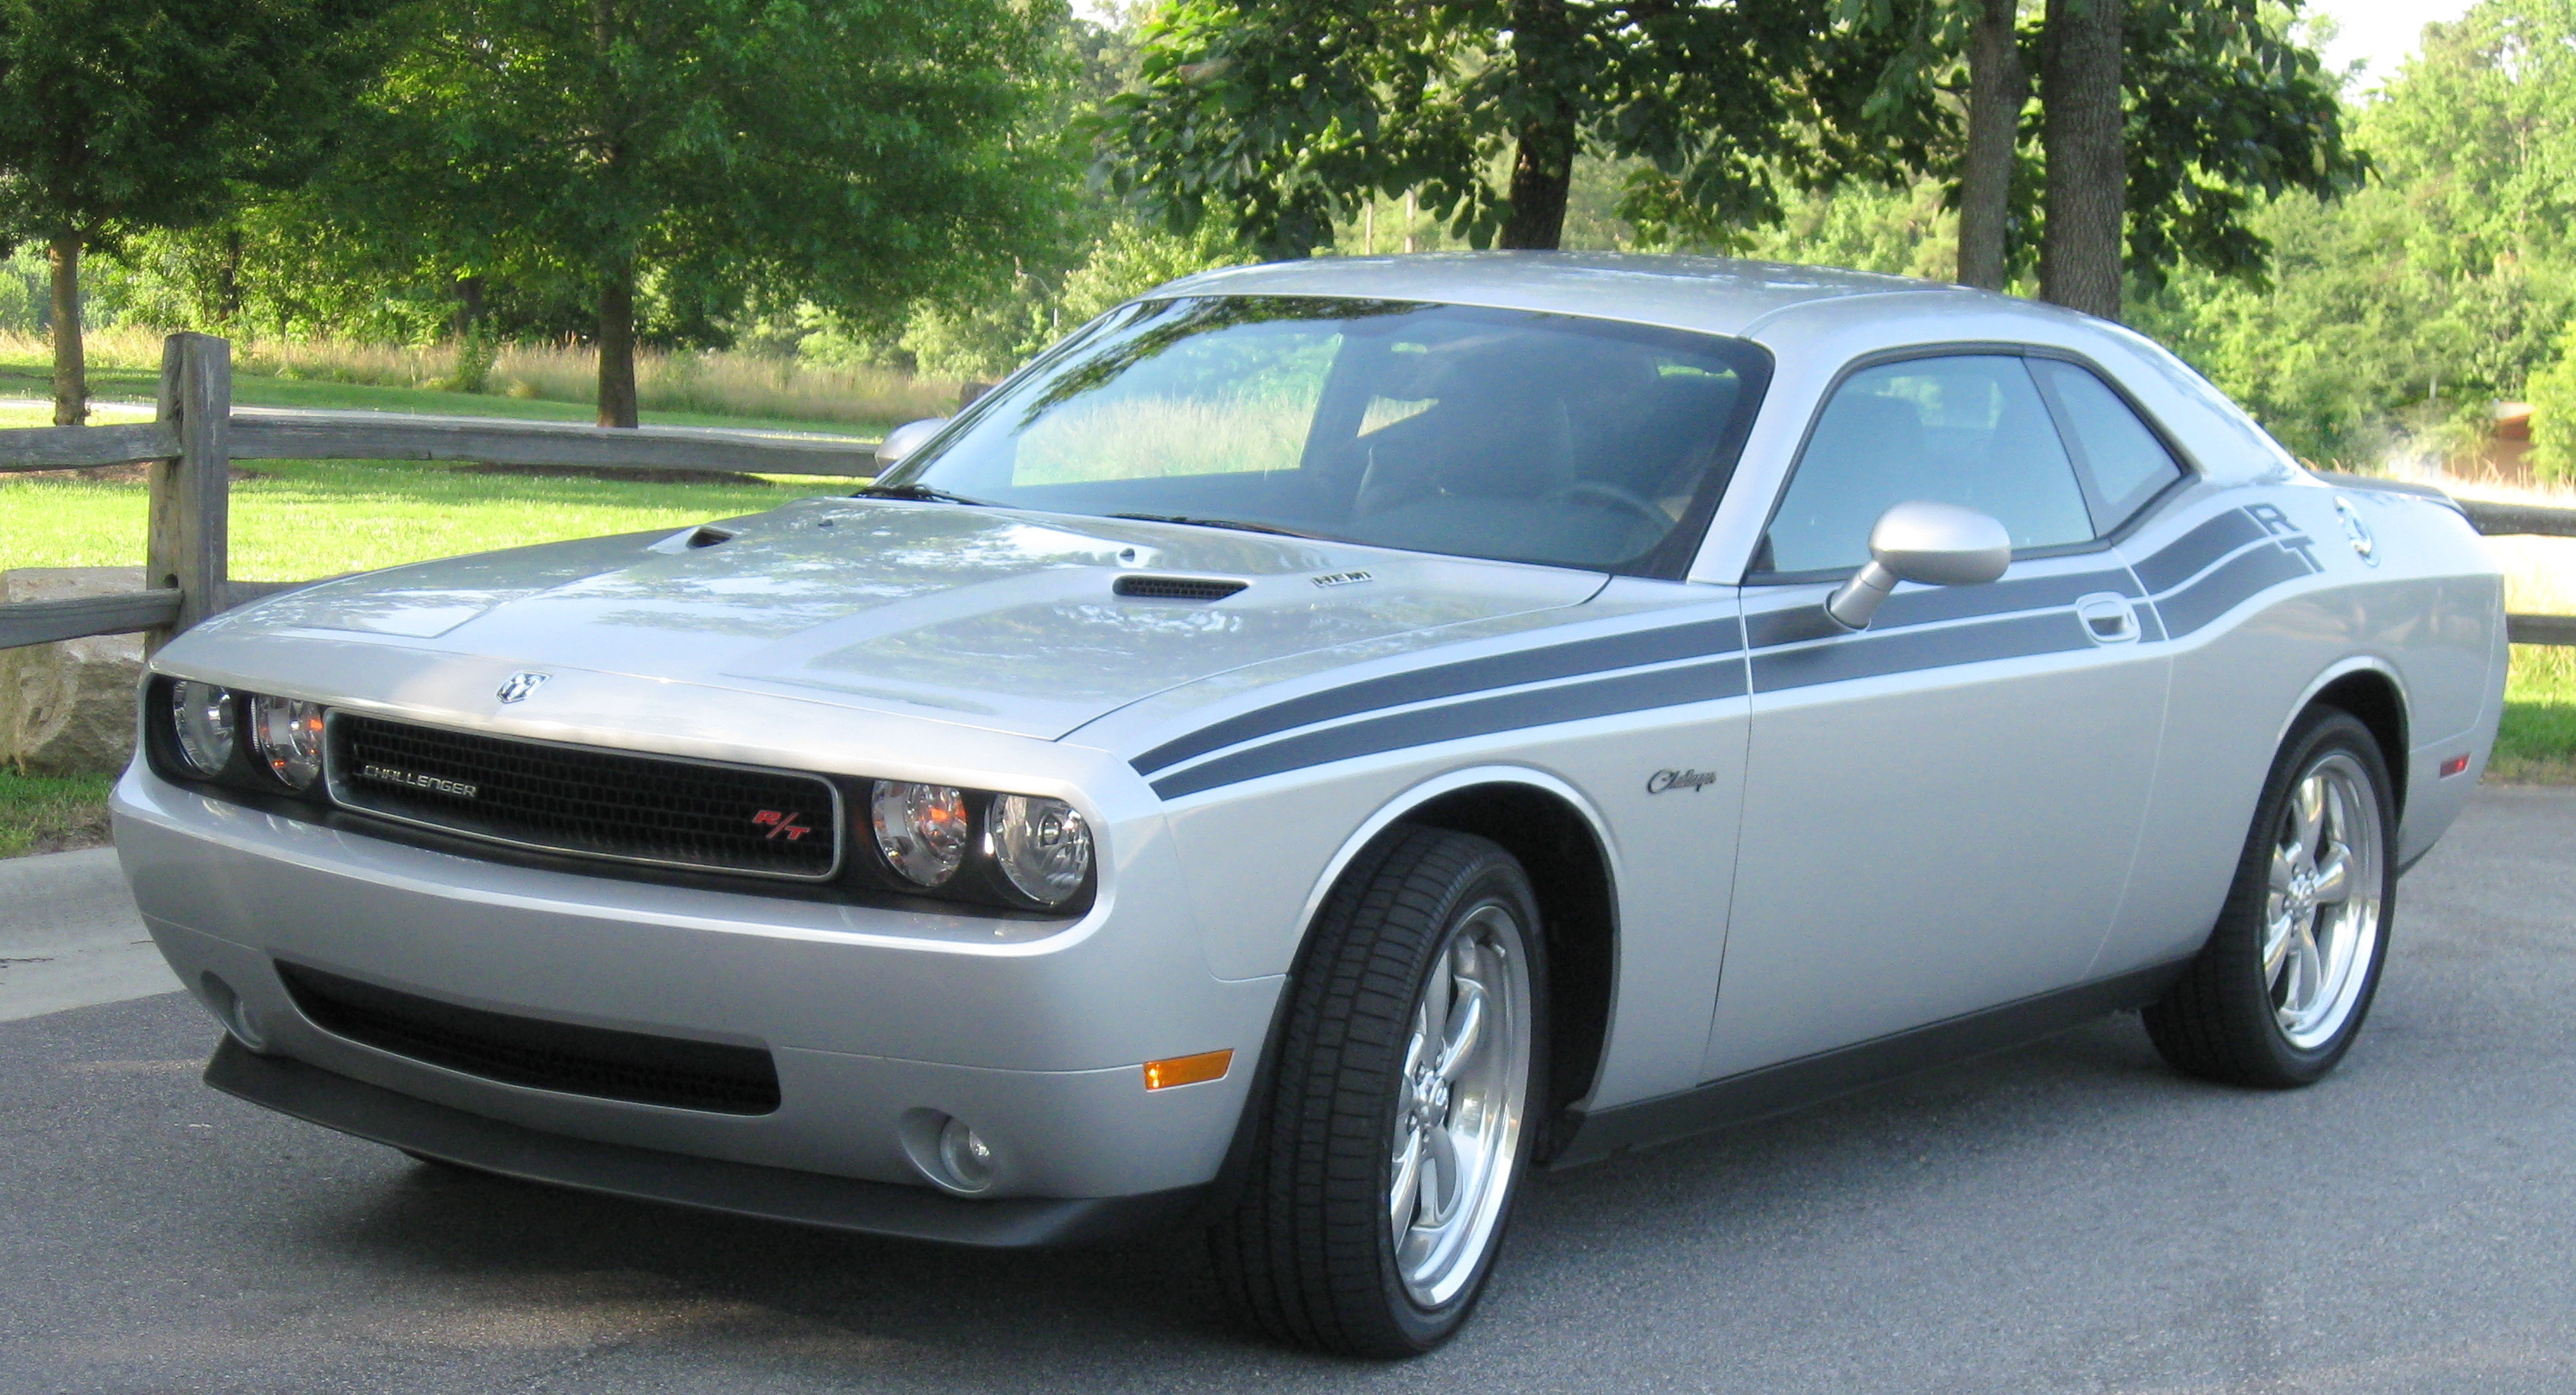 file 2010 dodge challenger rt classic jpg wikipedia. Black Bedroom Furniture Sets. Home Design Ideas